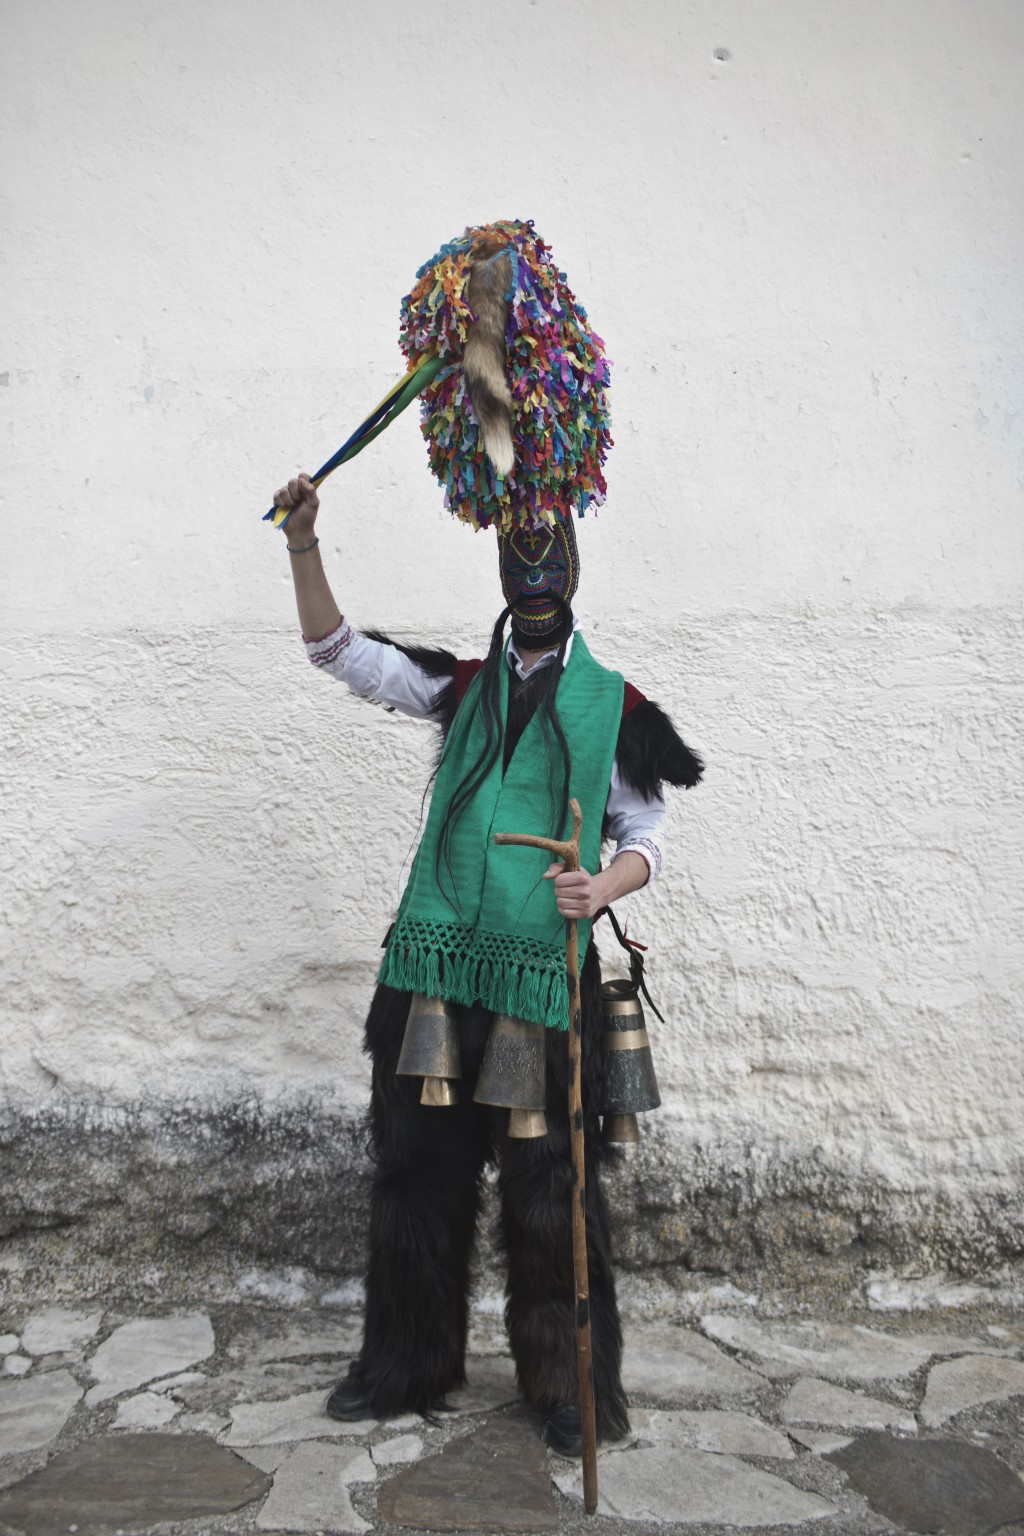 In this Monday March 11, 2019 photo a man wearing a mask that includes a meter- tall, ribbon-covered formation topped with a foxtail poses for a photo